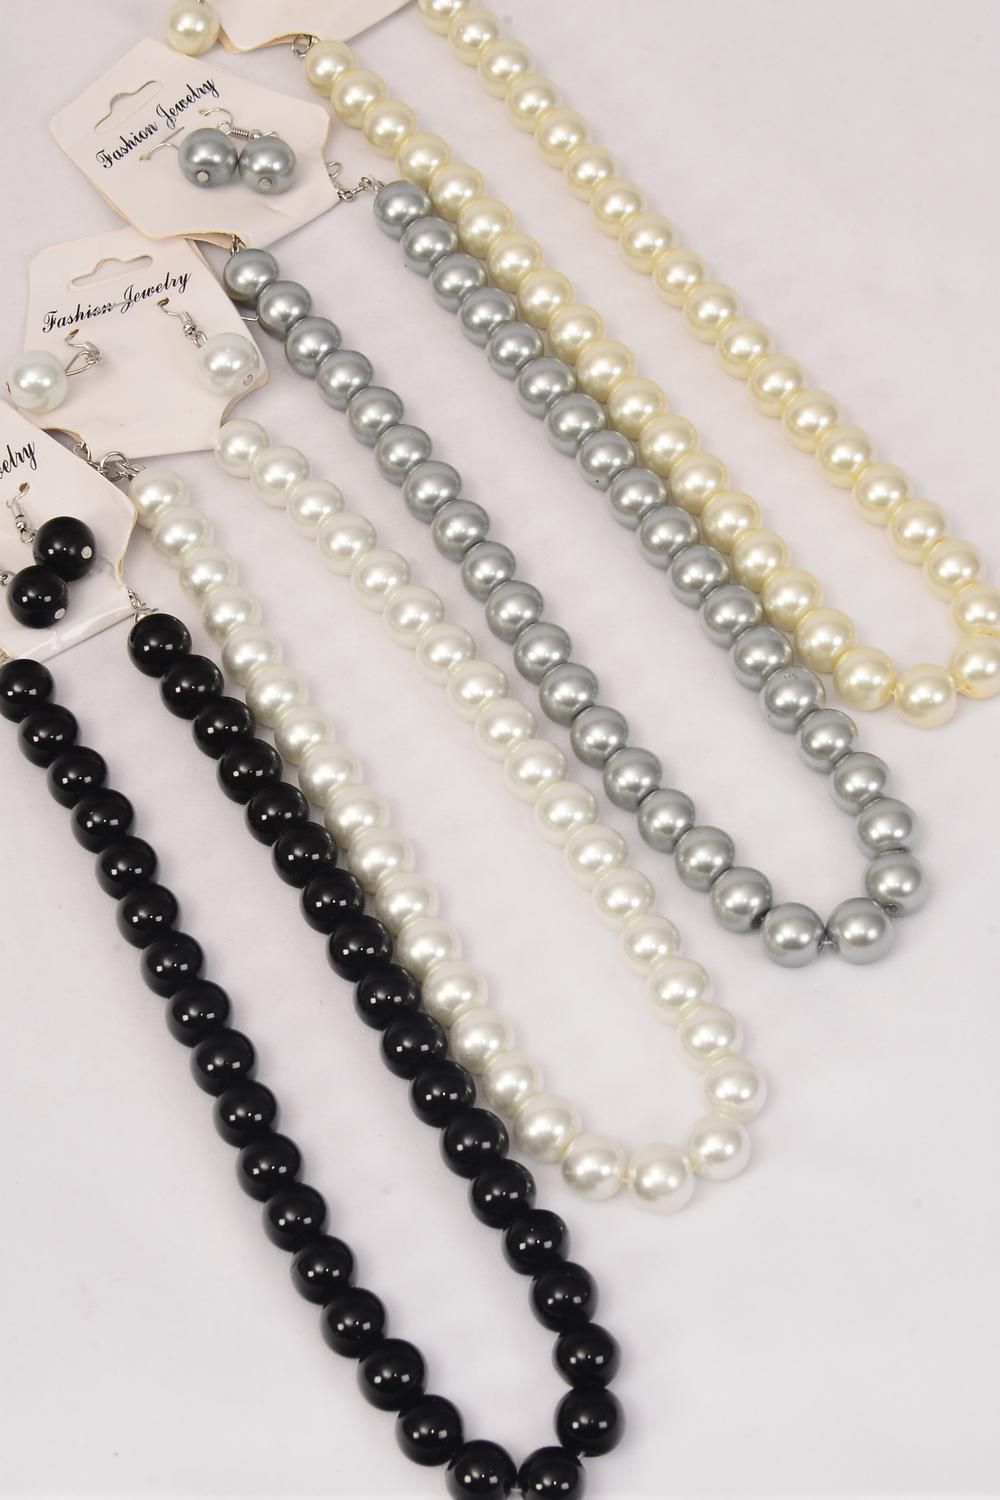 "Necklace Sets 12 mm Glass Pearls Mix/DZ Size-18"" Extension Chain,3 White,3 Cream,3 Gray,3 Black,4 Color Asst,Hang Tag & OPP Bag & UPC Code"